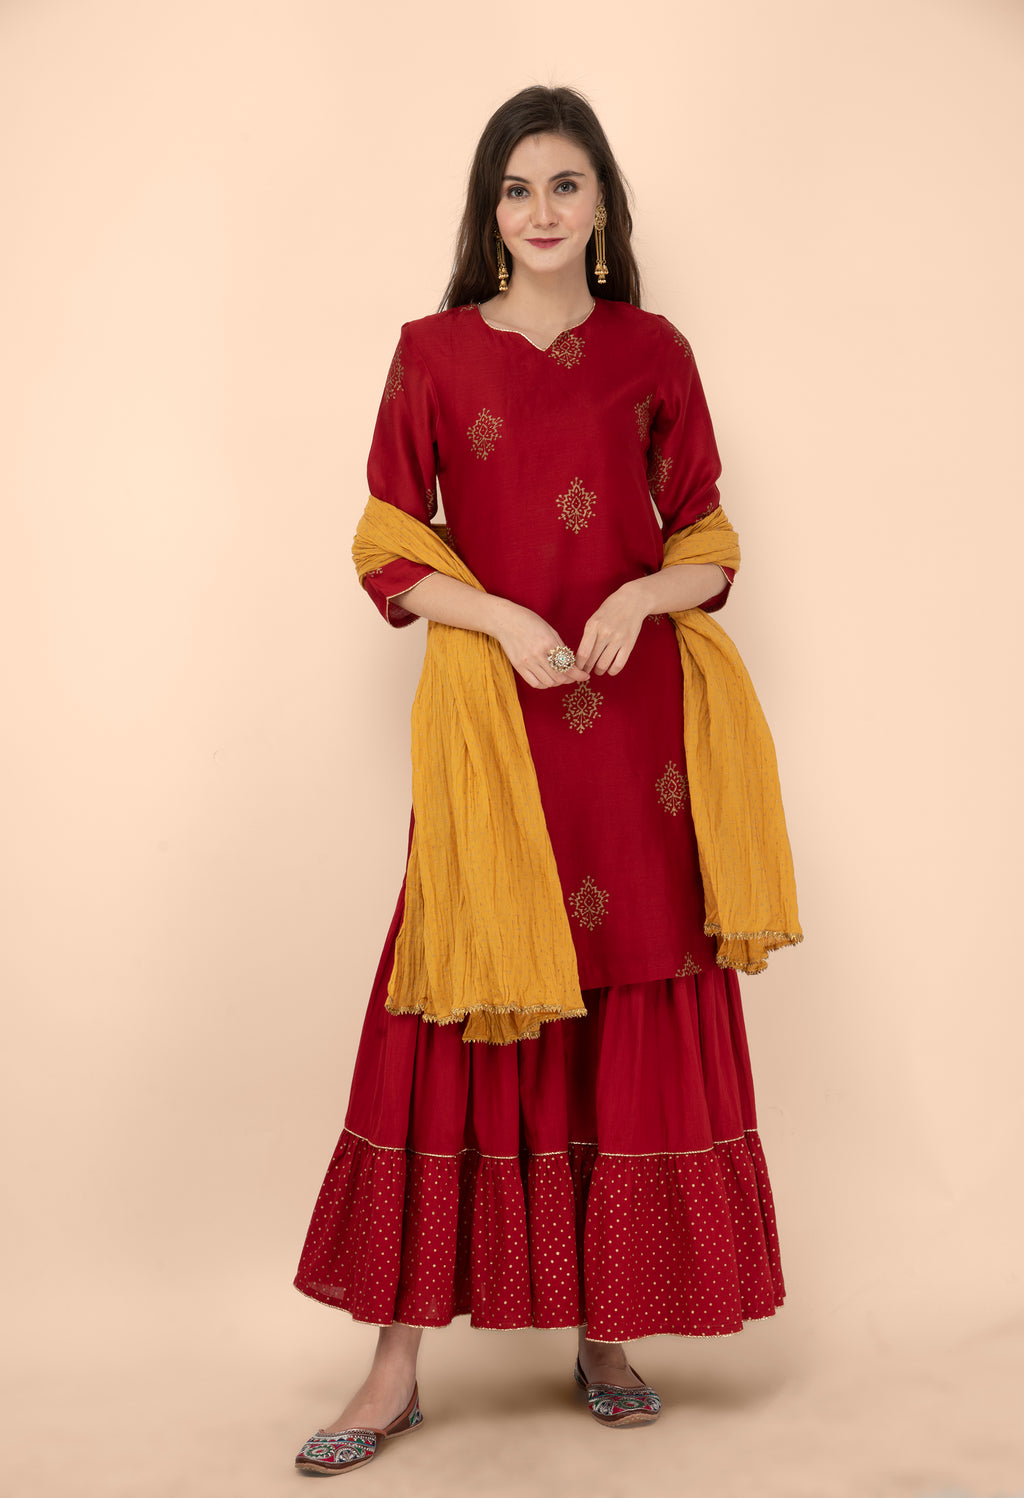 Maroon and Mustard Sharara Set with Crinkled Dupatta- Set of 3